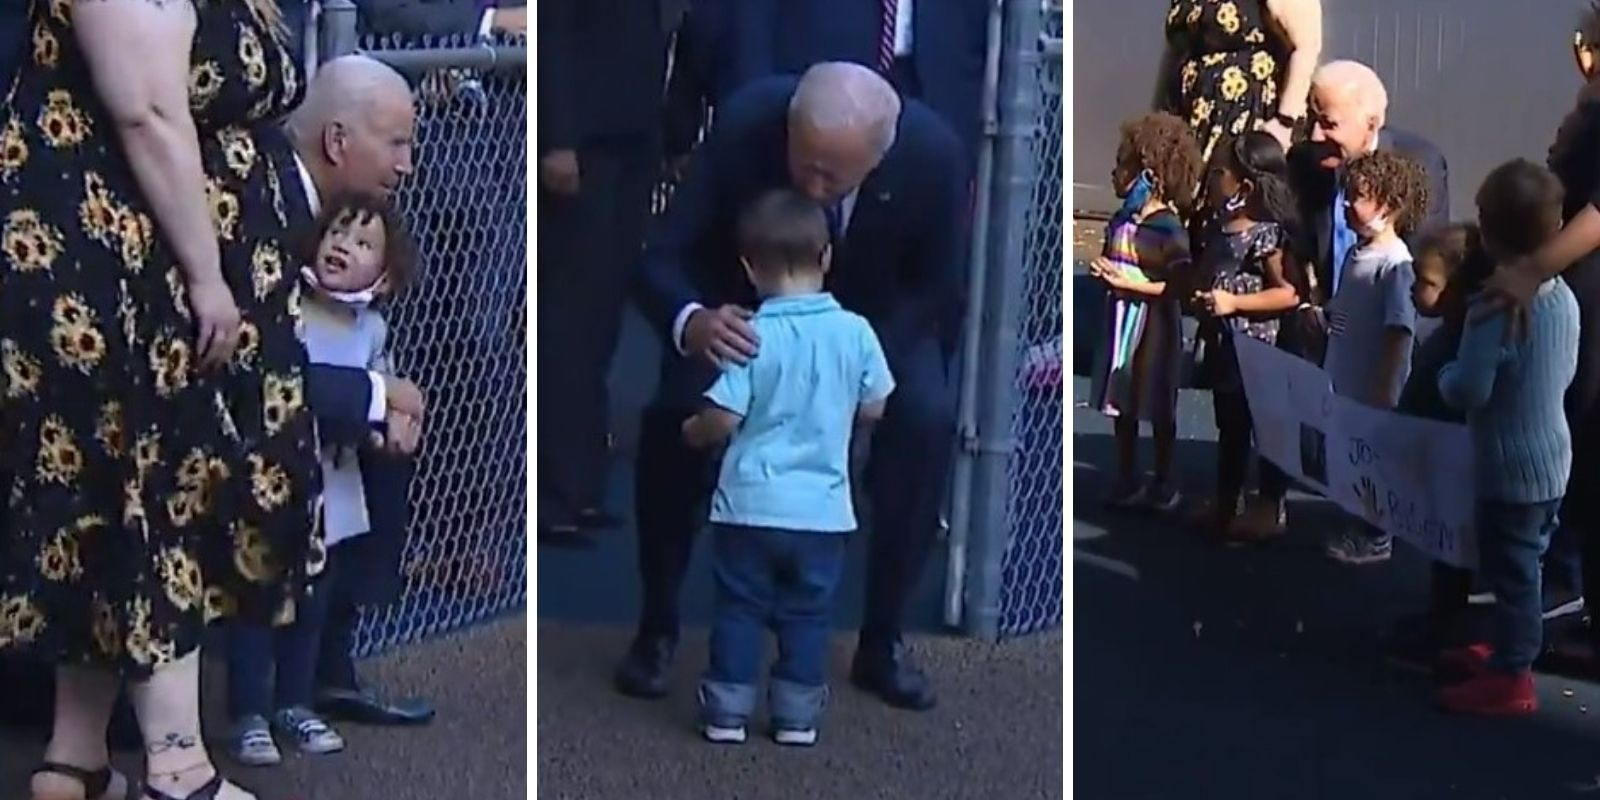 WATCH: Biden says at child care center 'Everybody knows I like kids better than people', Mia Cathell, on October 15, 2021 at 9:43 pm The Post Millennial